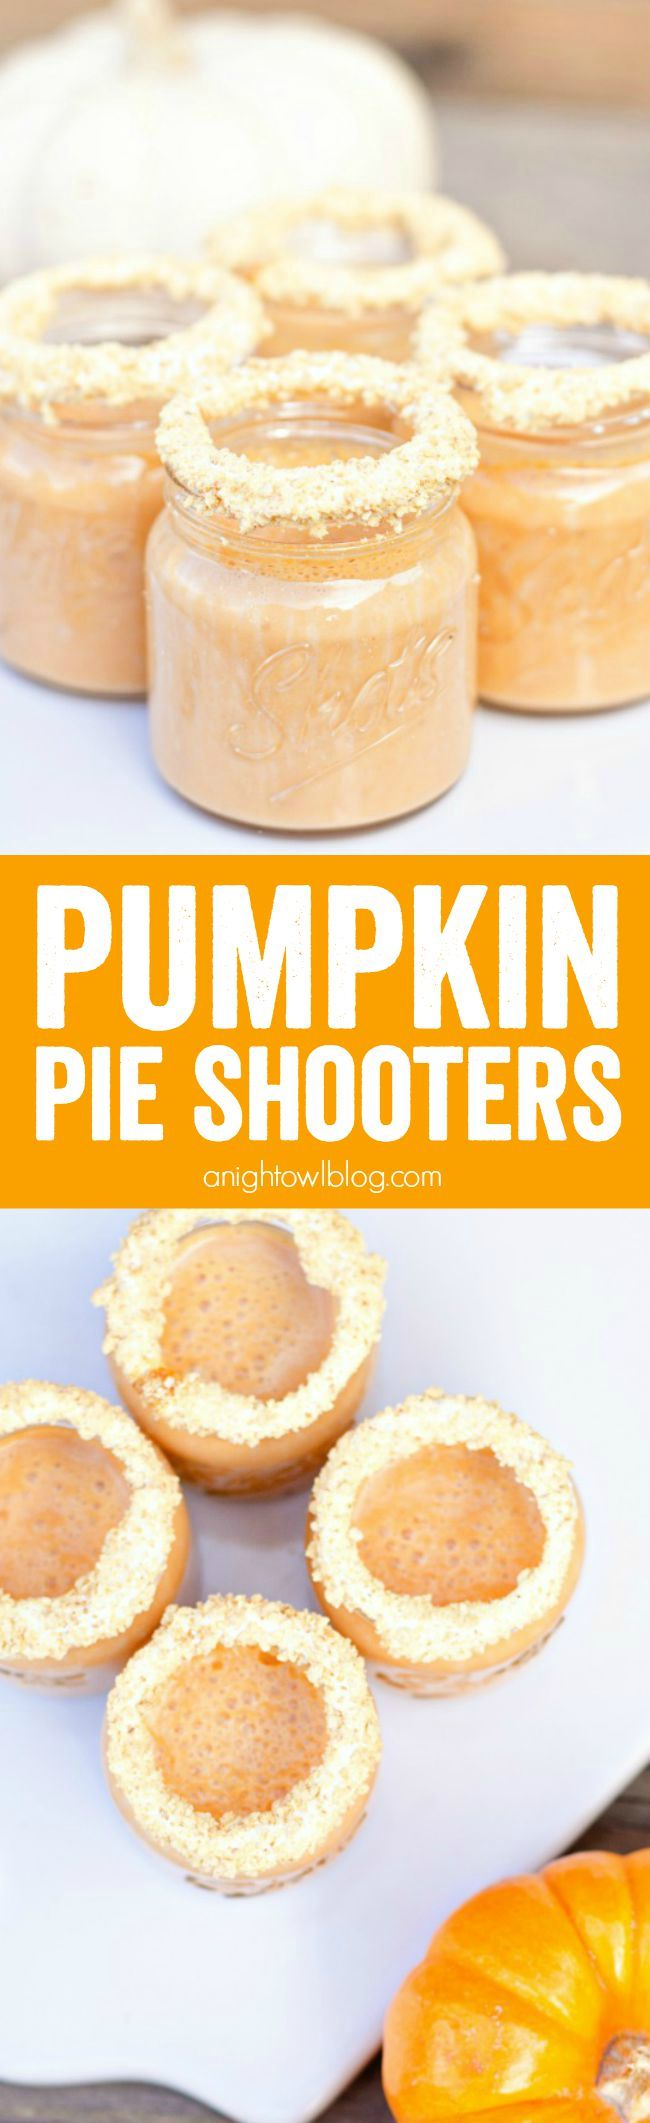 Add a little fun to your Fall! These Pumpkin Pie Shooters are delicious and can be made with or without alcohol! Serve them in adorable #WorldMarket Mason Jar Shot Glasses! #WorldMarketTribe